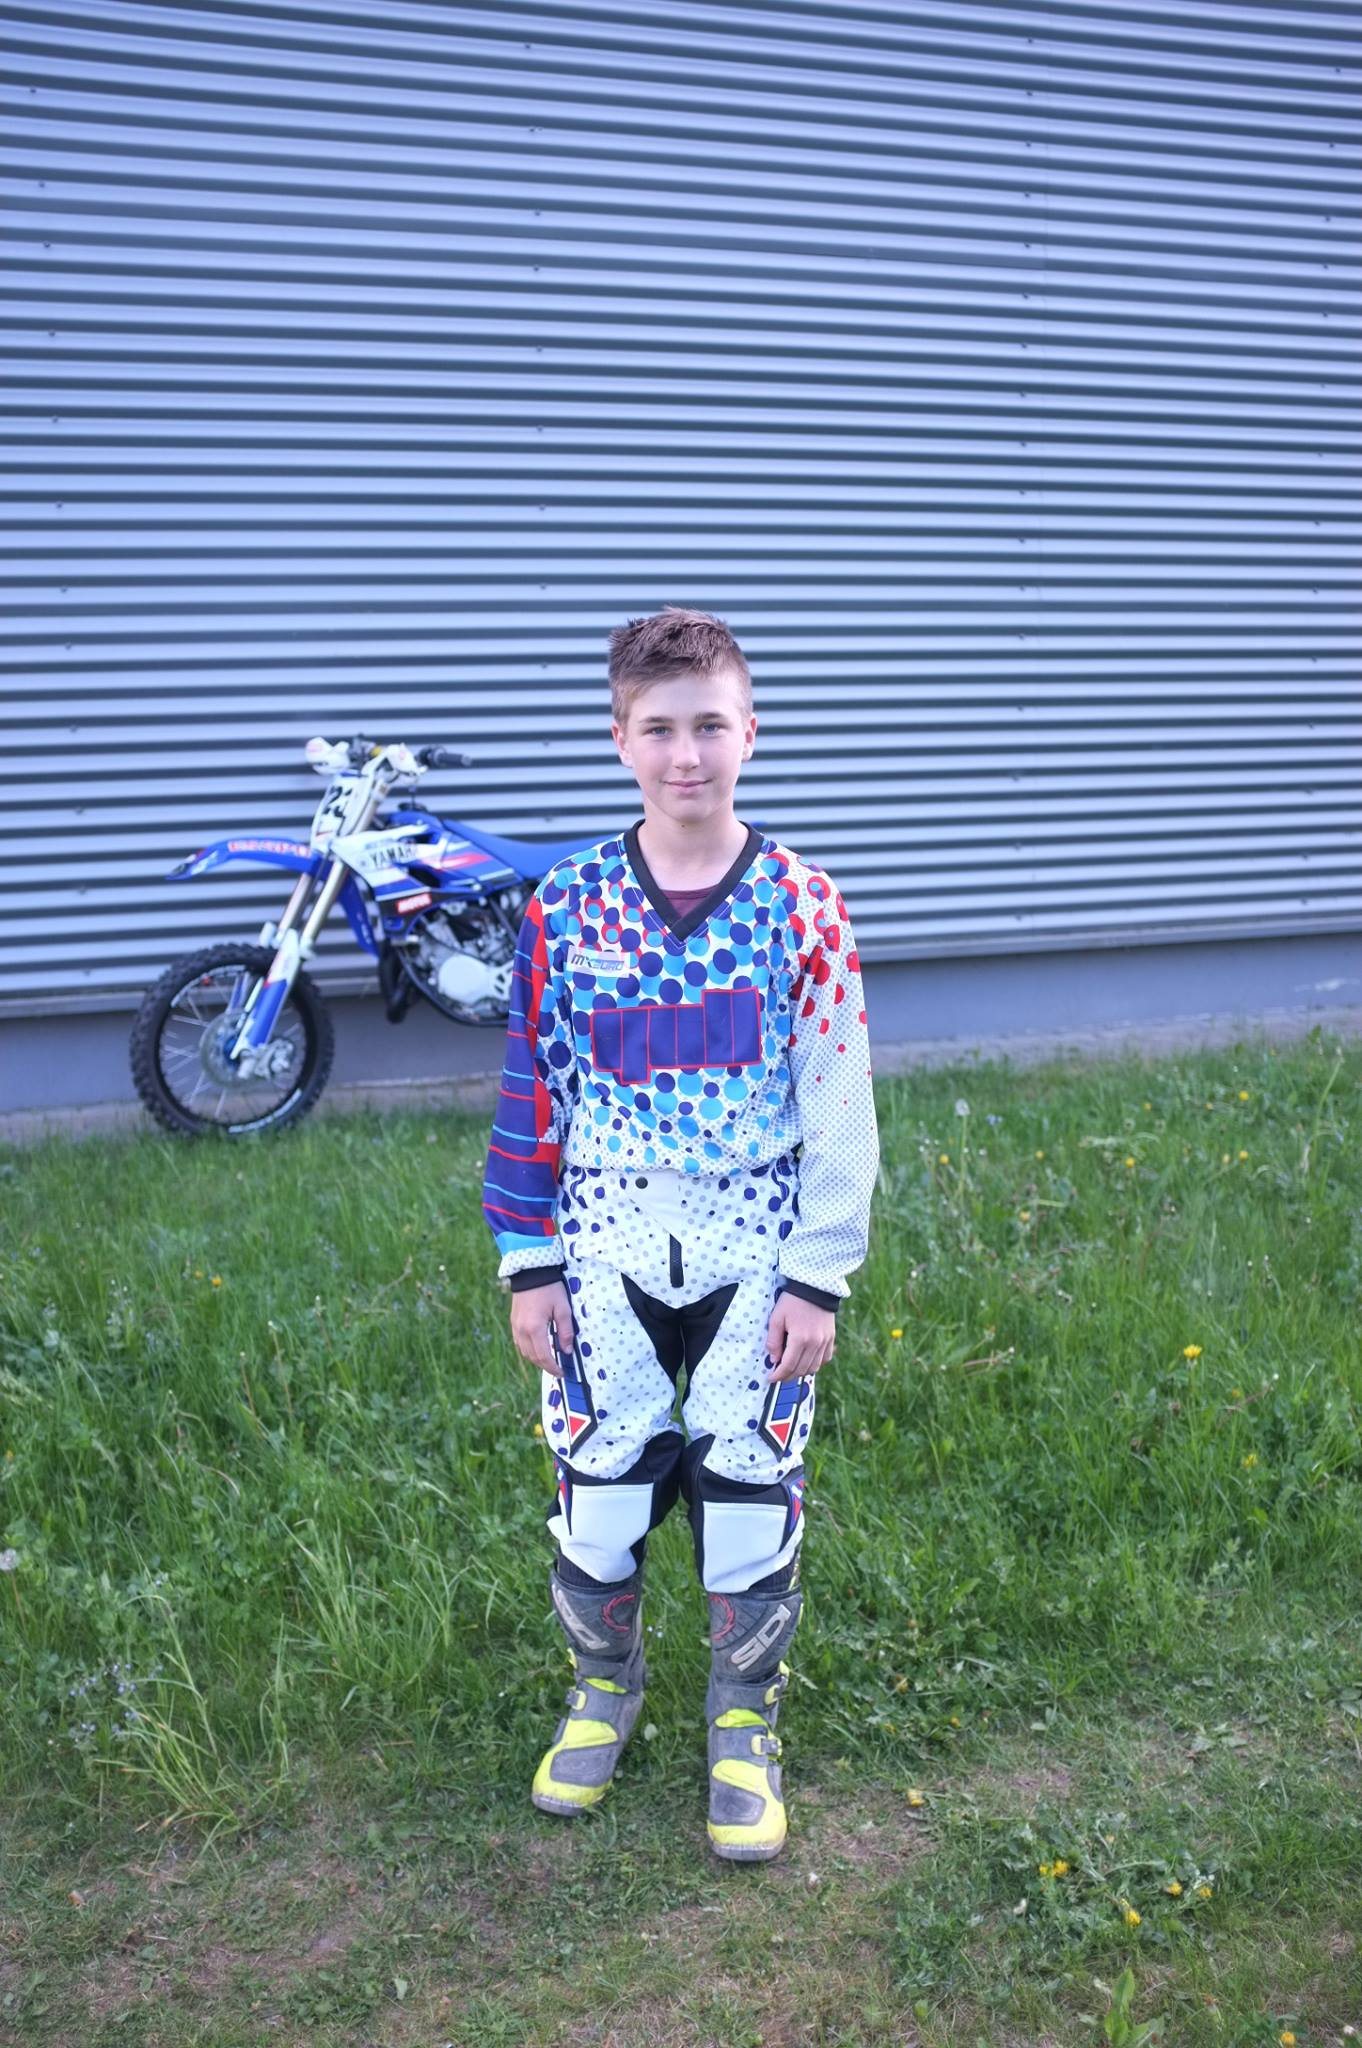 Gull motocross gear Ugnius Liulys